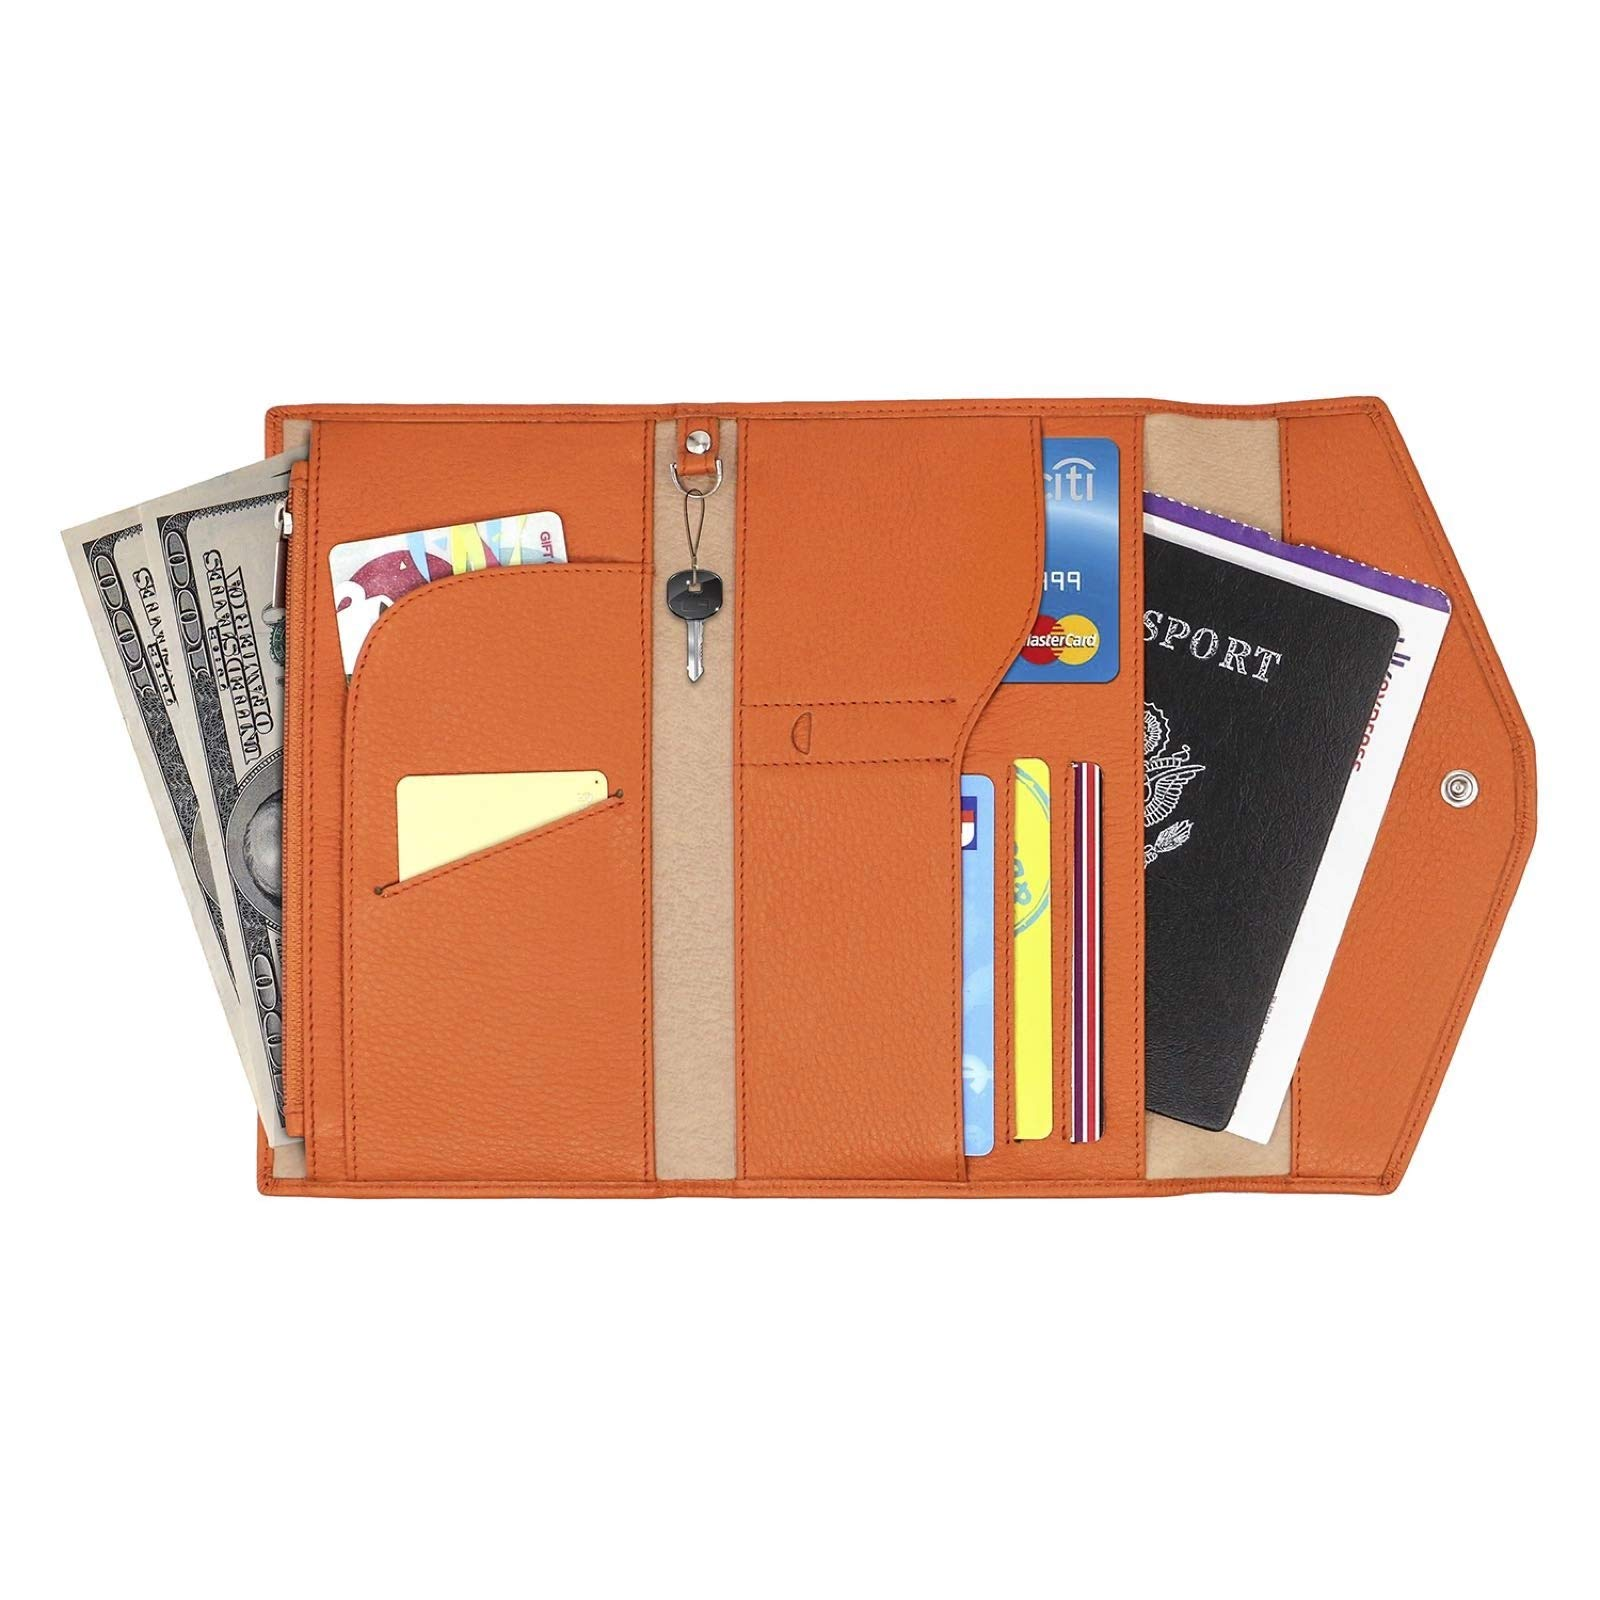 Genuine Leather RFID Blocking Passport Travel Wallet - Card Organizer